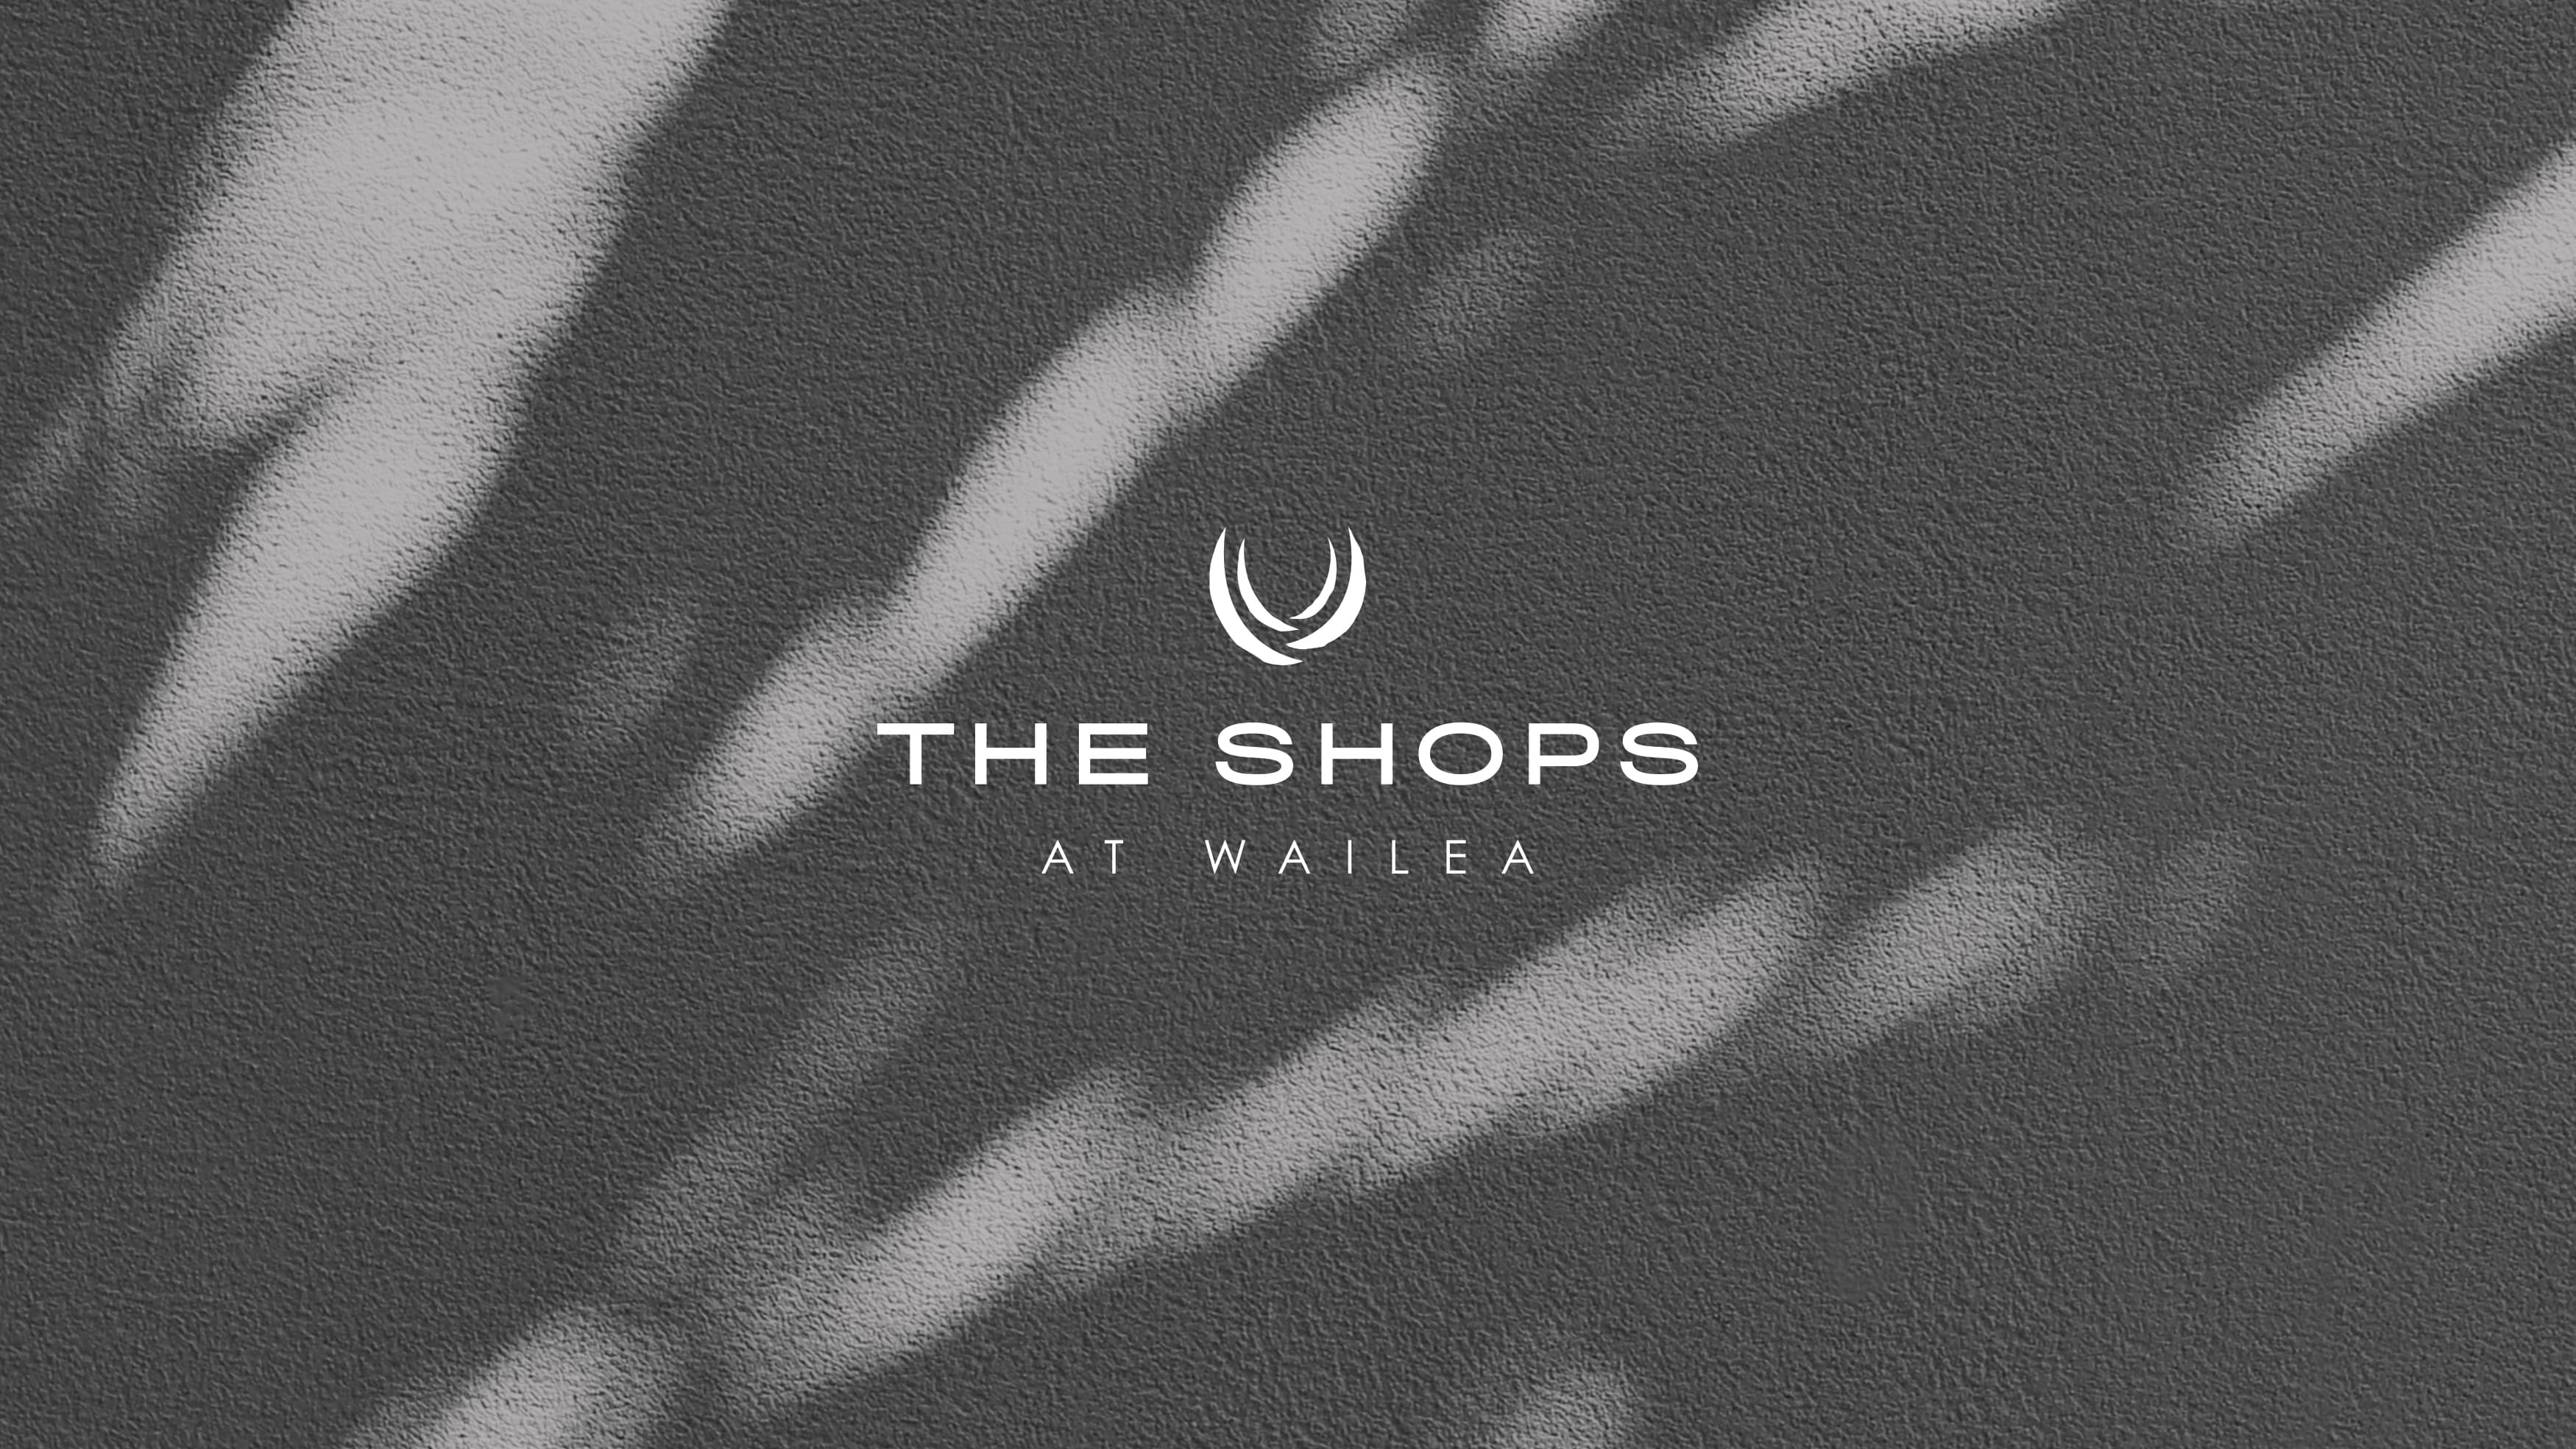 The Shops of Wailea white logo on a shadow wall of a palm tree leaf.